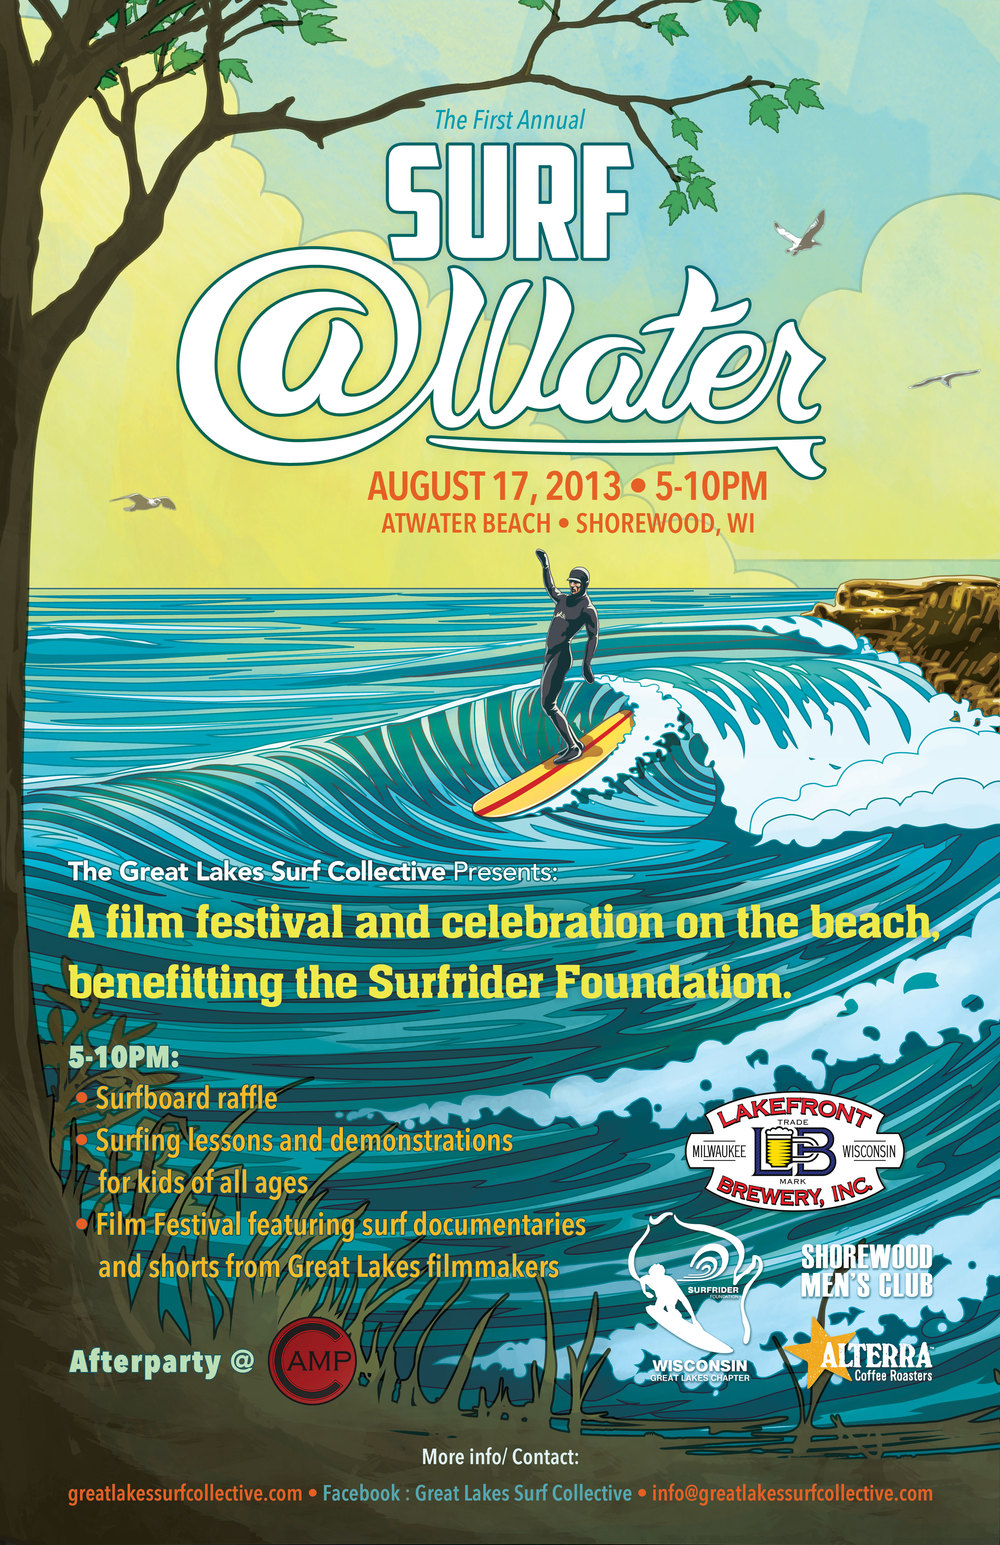 Surf Atwater event poster. Click to enlarge image.